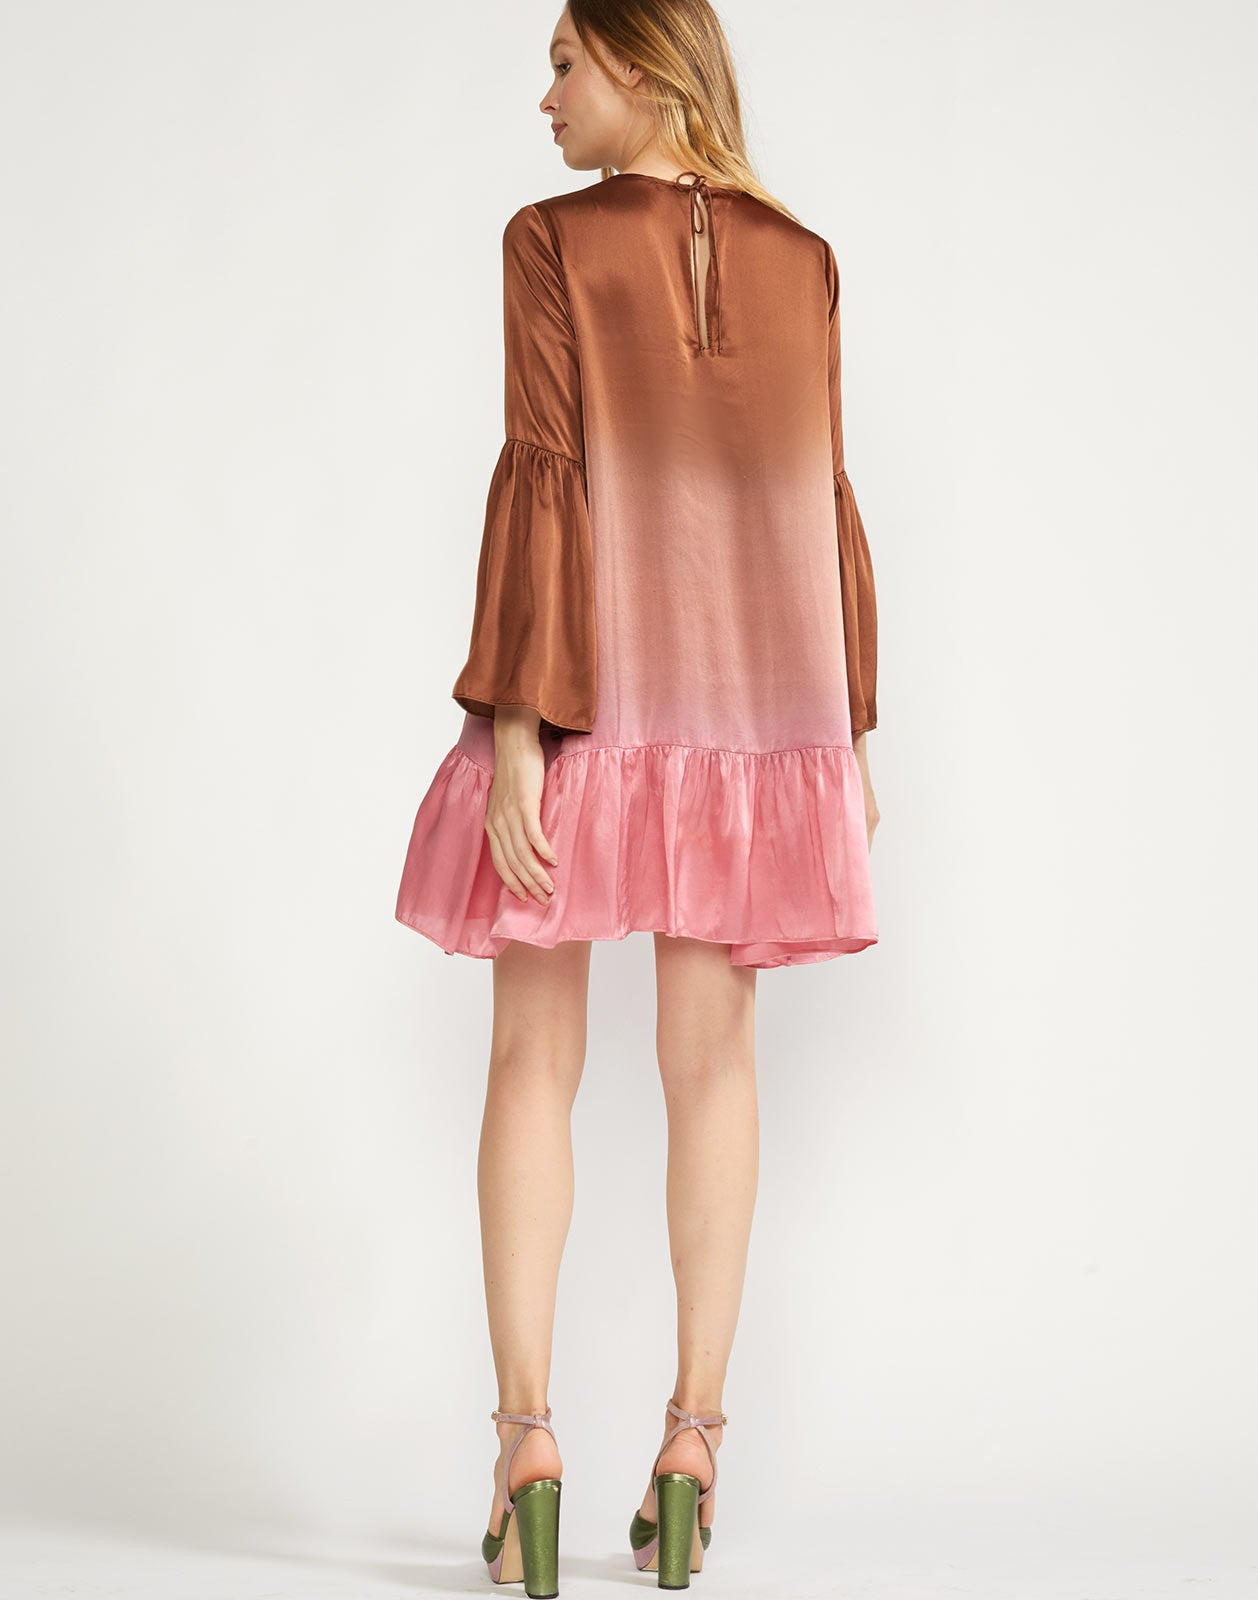 Back view of swing dress with pink and brown ombre